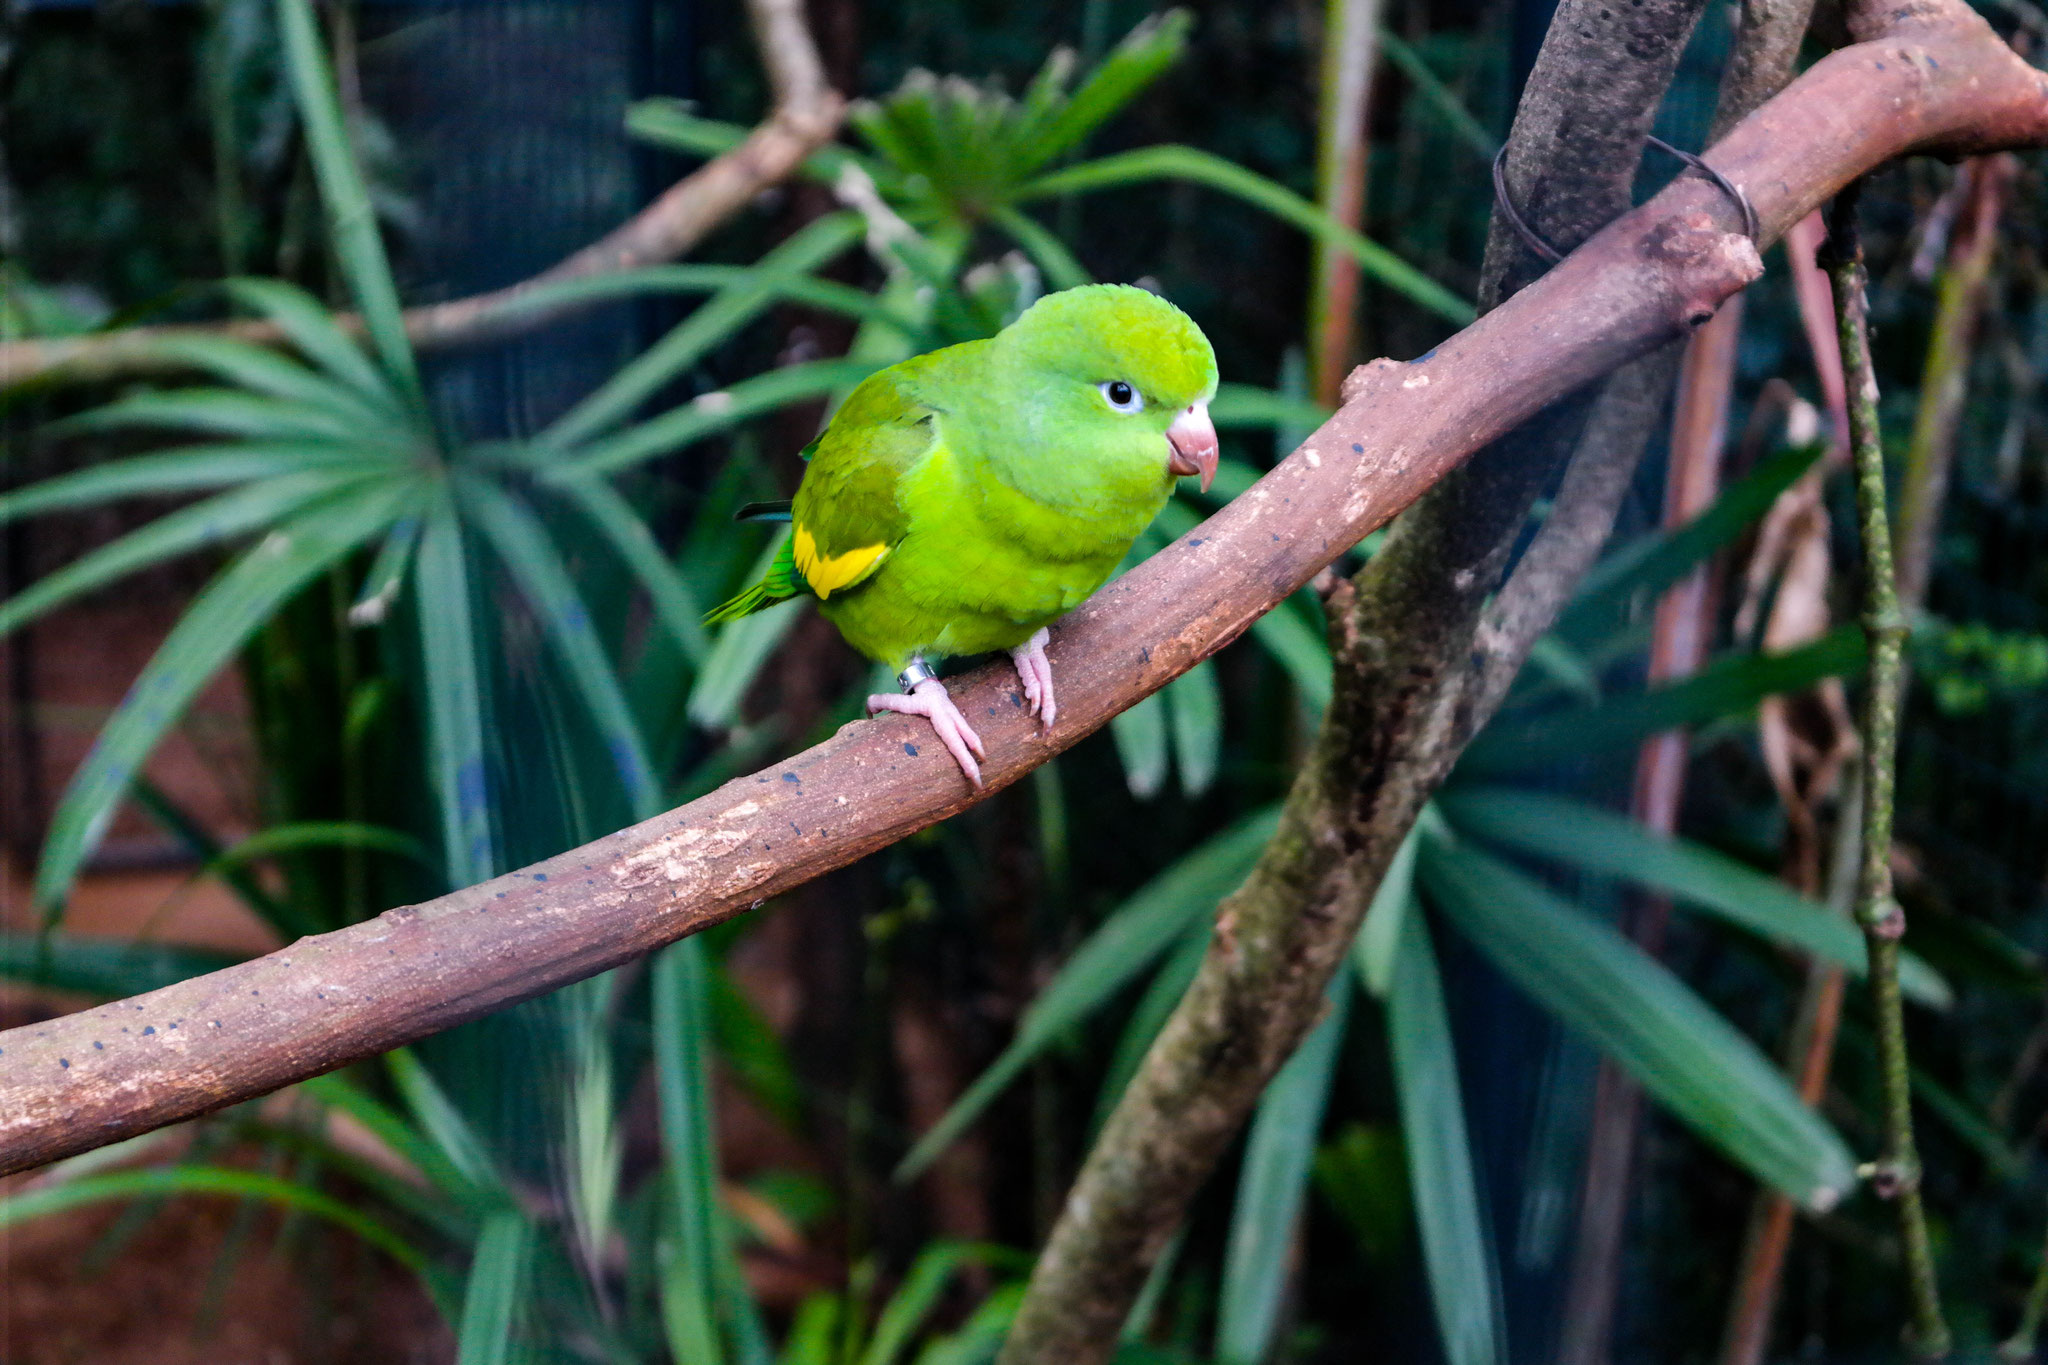 Another smaller green parrot on a branch looking around.